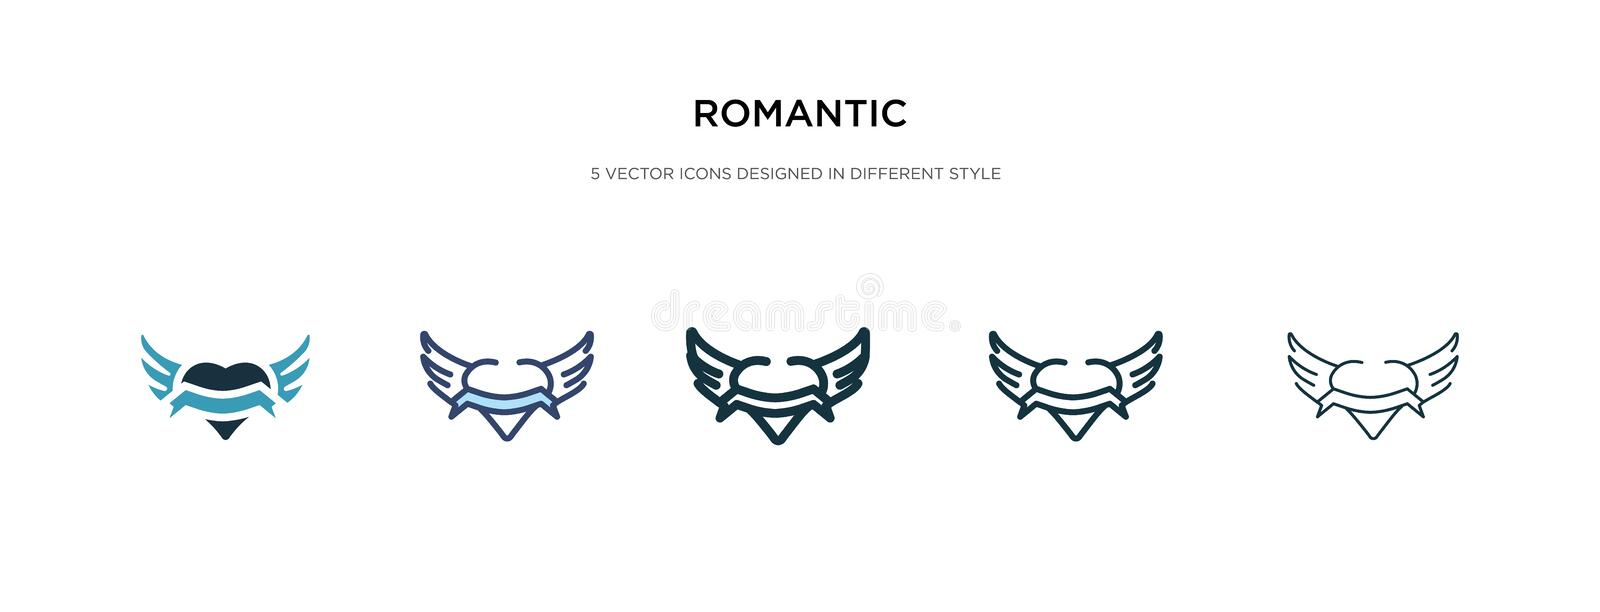 Romantic icon in different style vector illustration. two colored and black romantic vector icons designed in filled, outline, stock illustration